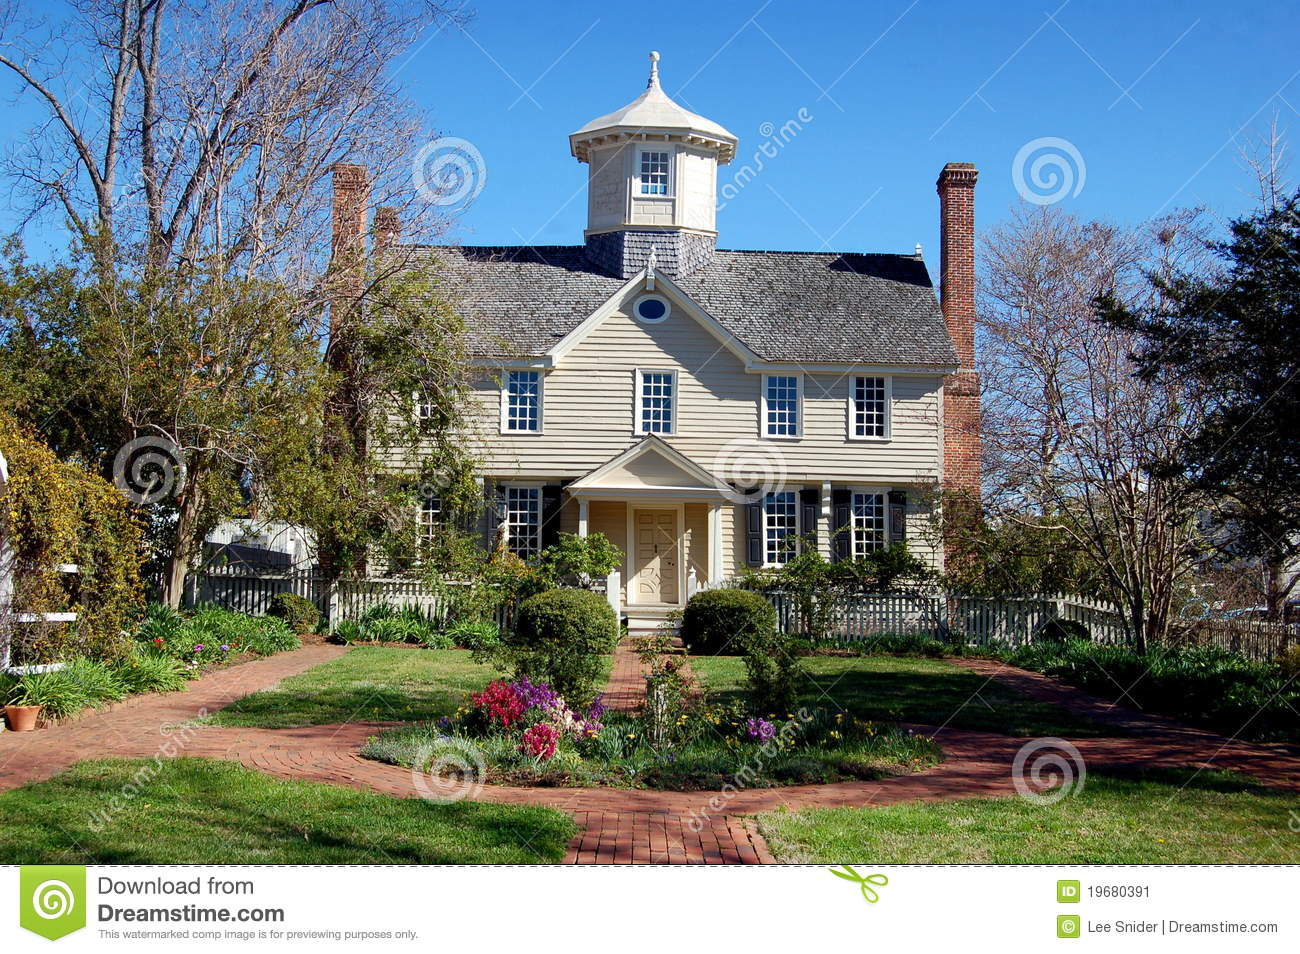 Edenton Nc 1725 Cupola House Stock Image Image Of